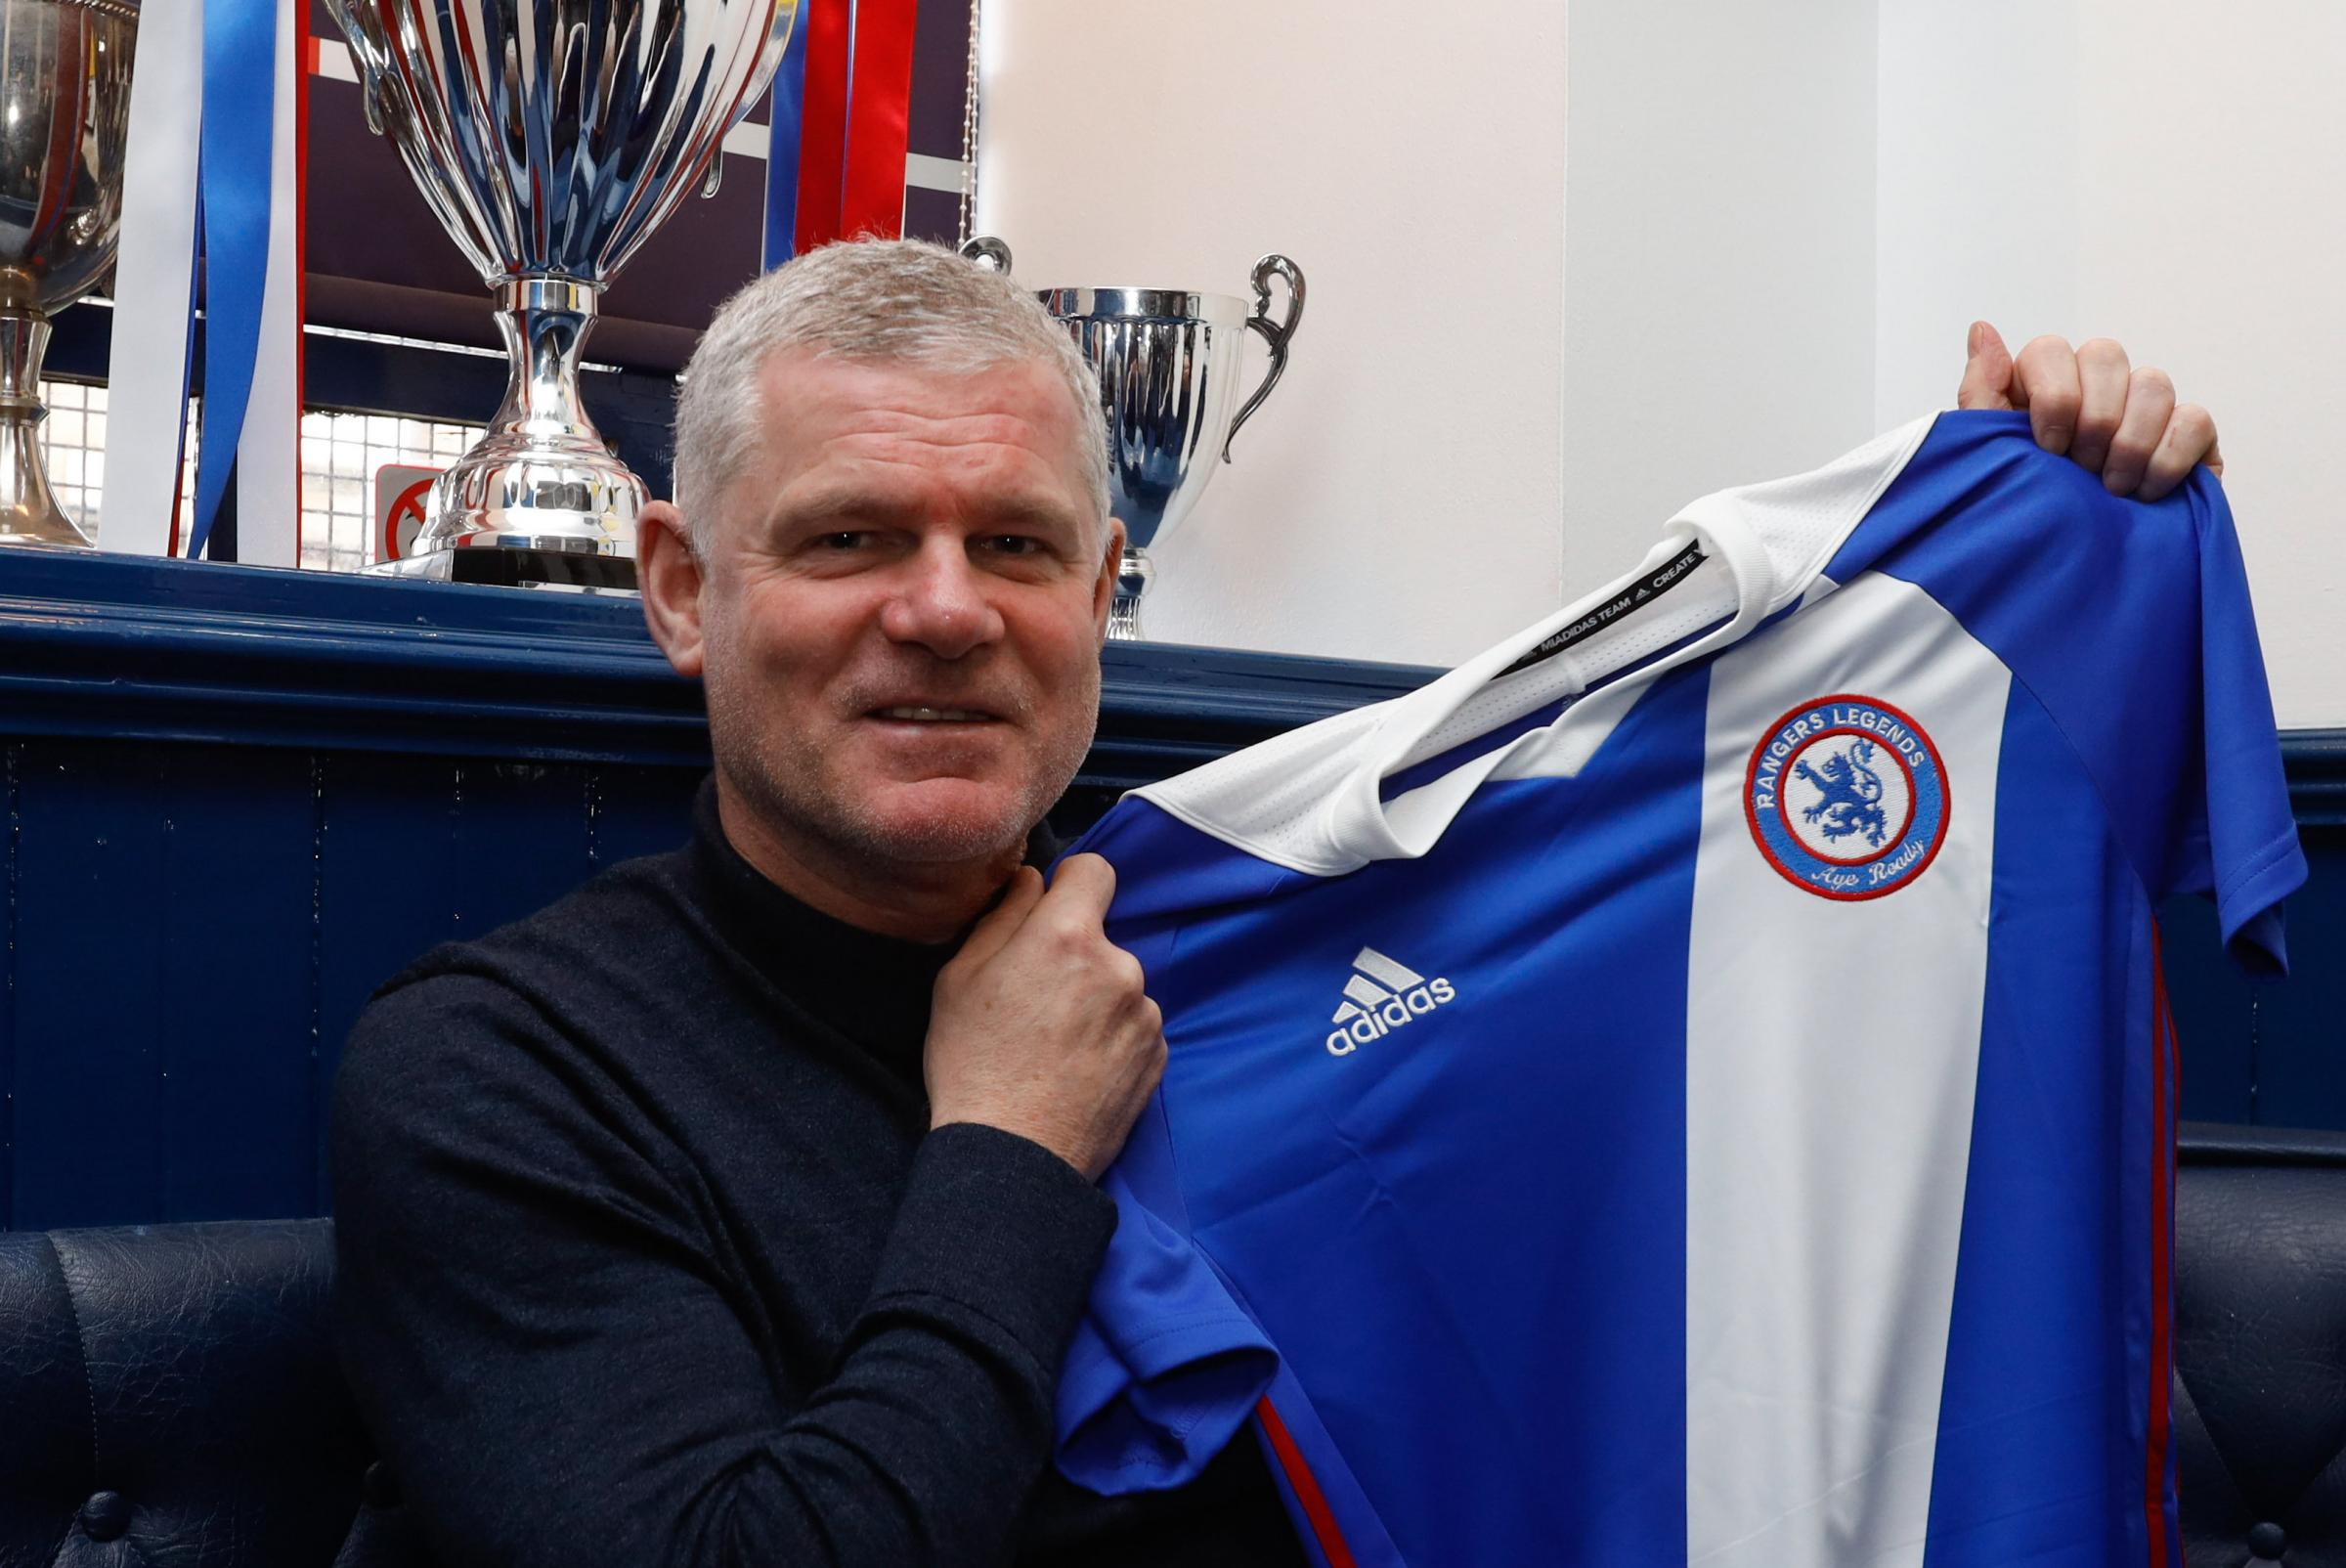 Ian Durrant won't give up on Rangers' title dream but knows time is running out for Steven Gerrard's side